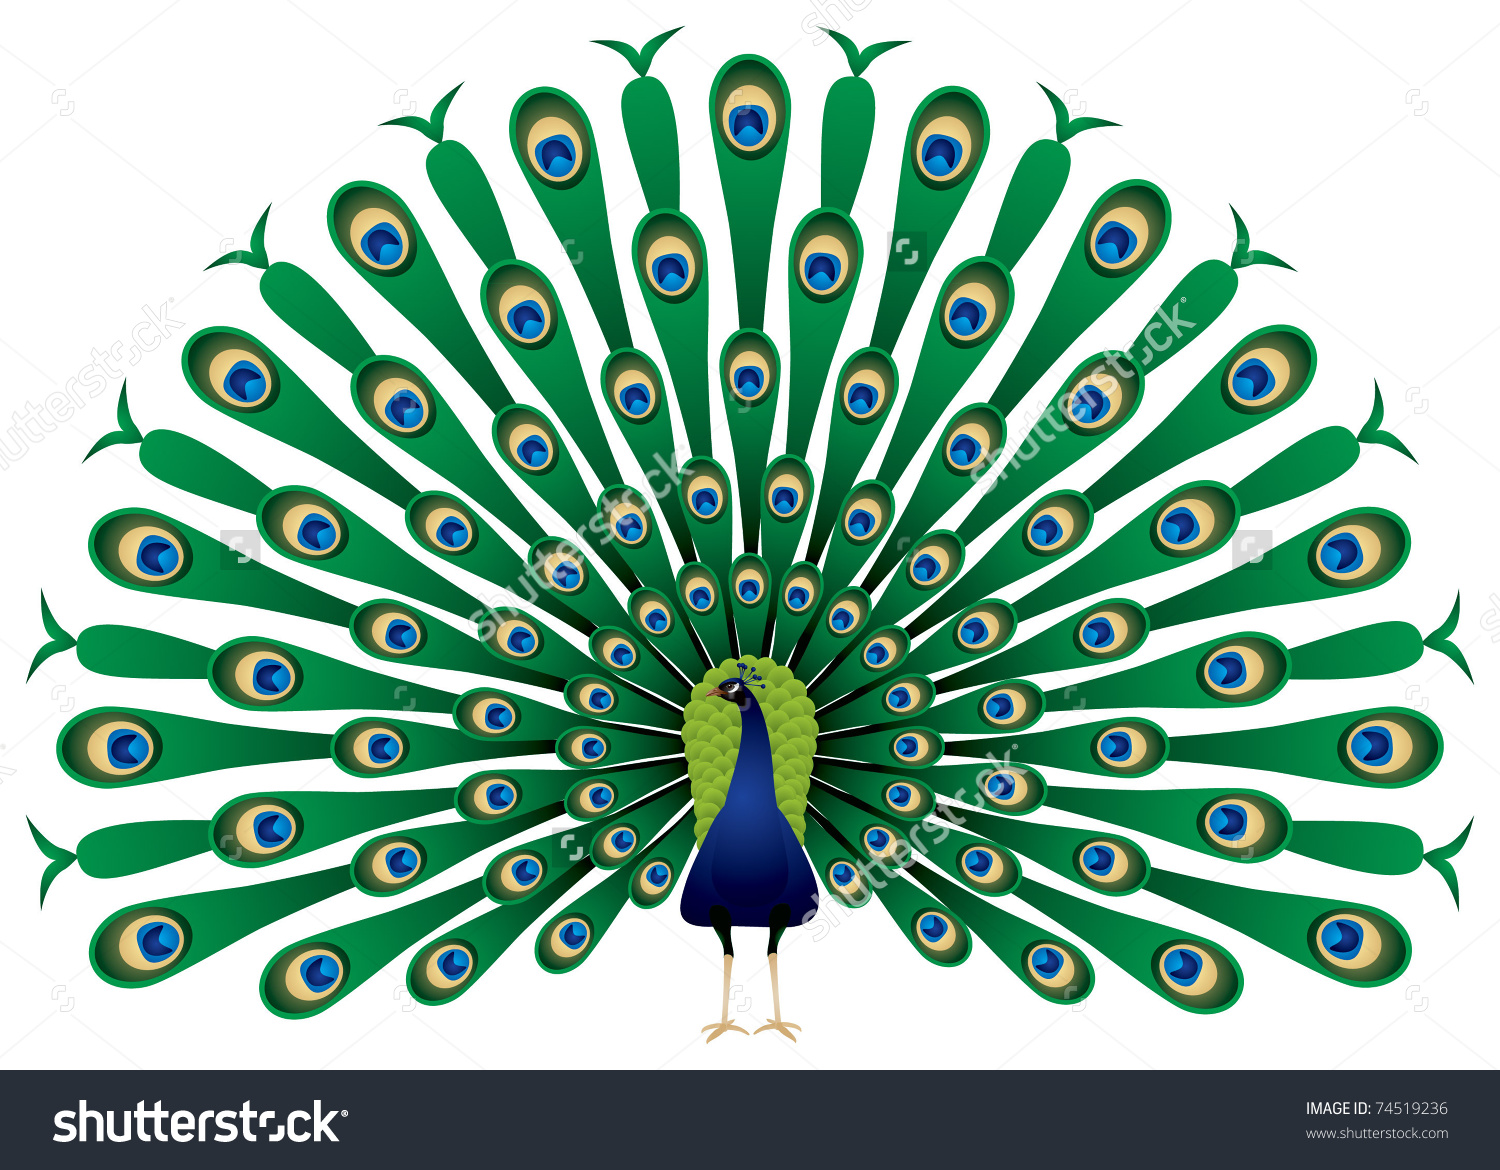 Peafowl clipart #11, Download drawings